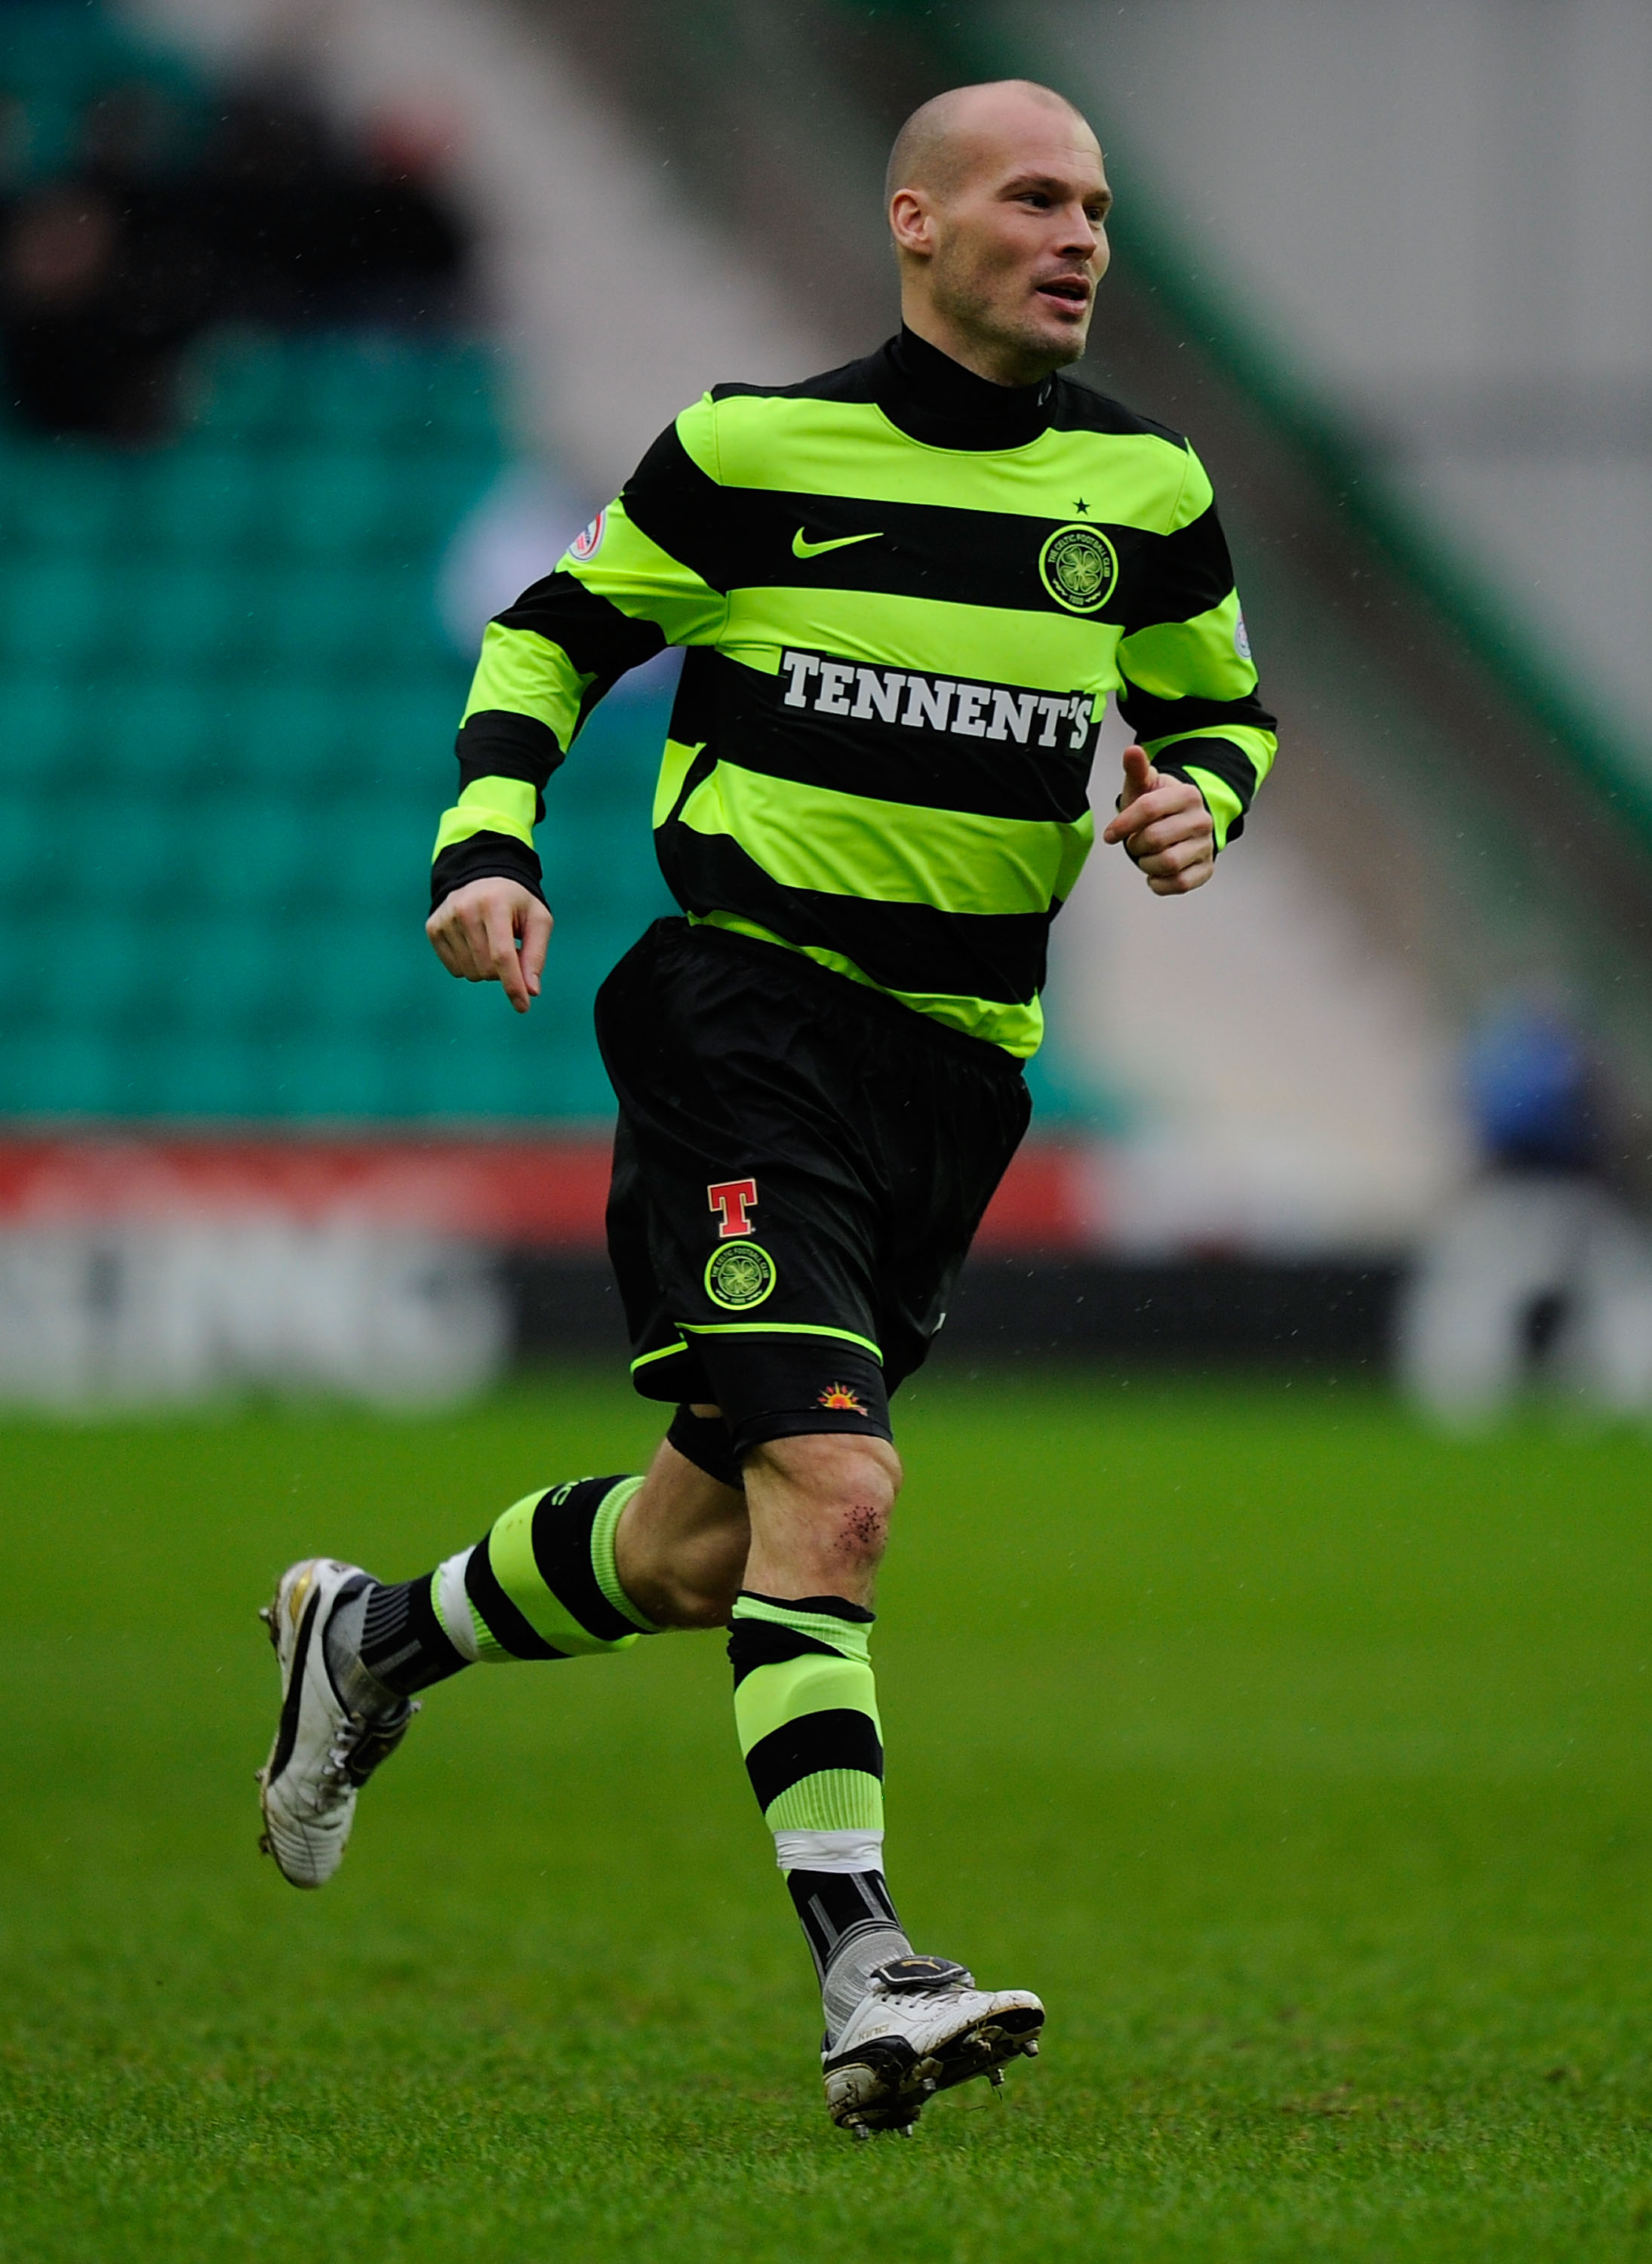 EDINBURGH, SCOTLAND - JANUARY 15:  Celtic forward Fredrik Ljungberg in action during the Clydesdale Bank Premier League match between Hibernian and Celtic at Easter Road on January 15, 2011 in Edinburgh, Scotland.  (Photo by Stu Forster/Getty Images)